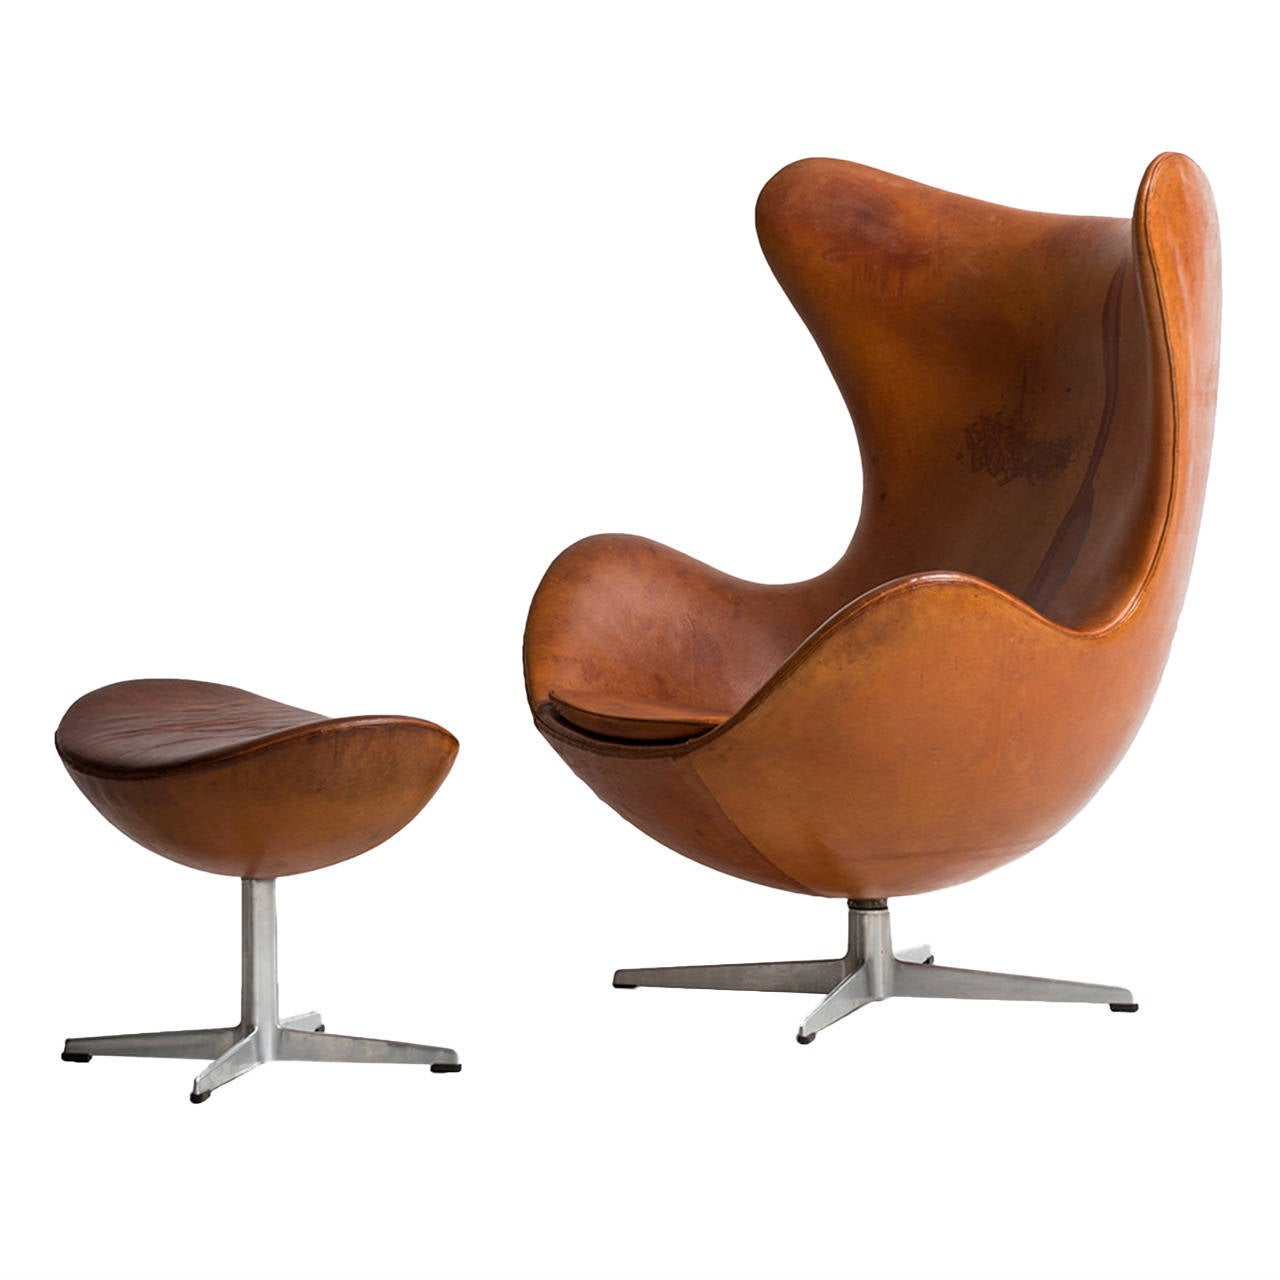 Arne jacobsen egg chair in original cognac brown leather for Egg chair original